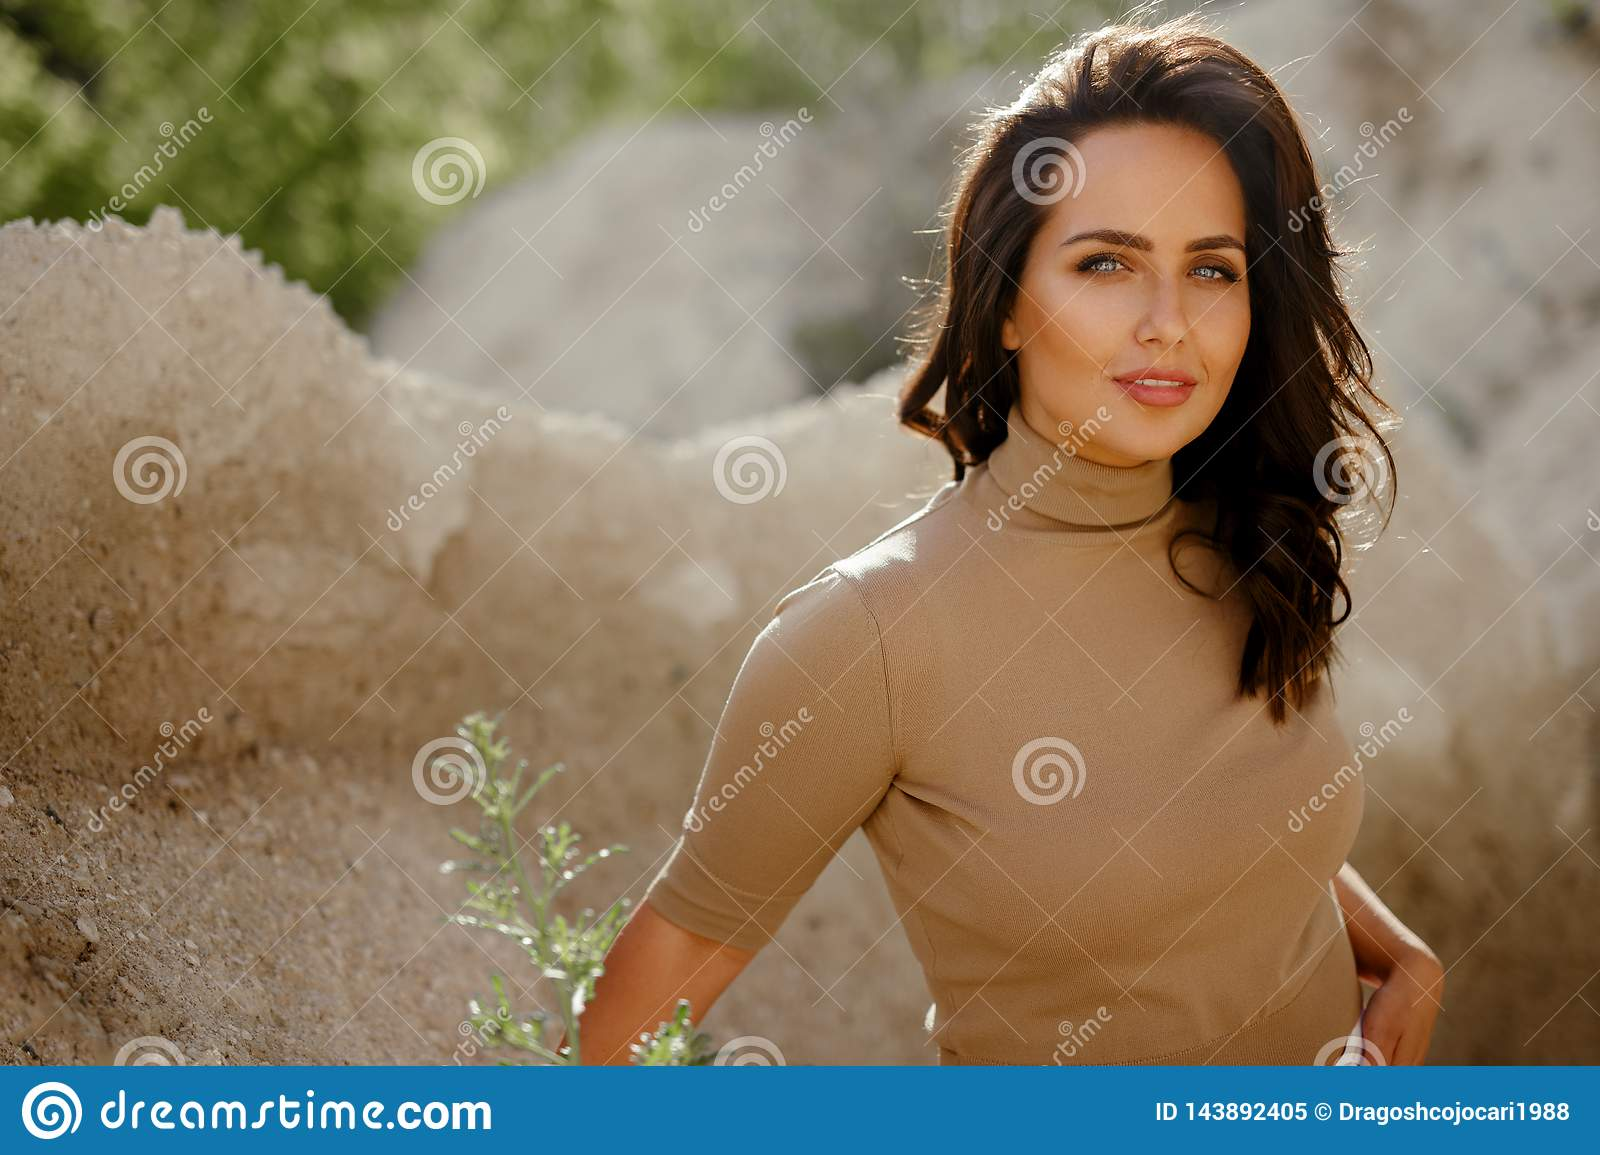 Portrait of gorgeous young woman looking at camera standing in nature, with copy space. Beauty concept